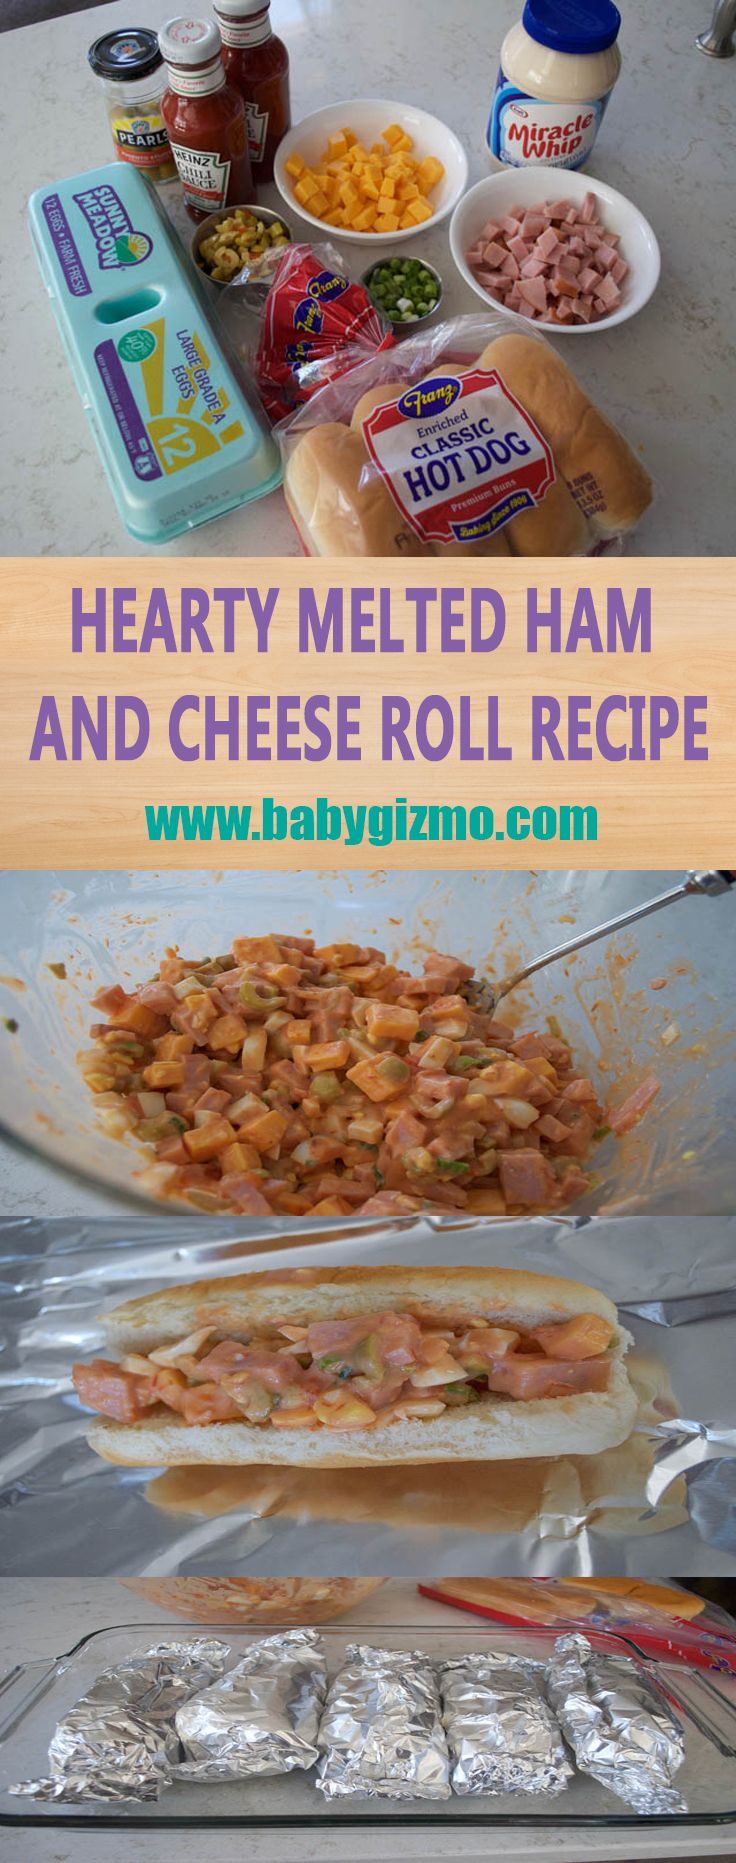 Hearty Melted Ham and Cheese Roll #HamandCheese #EasyLunch